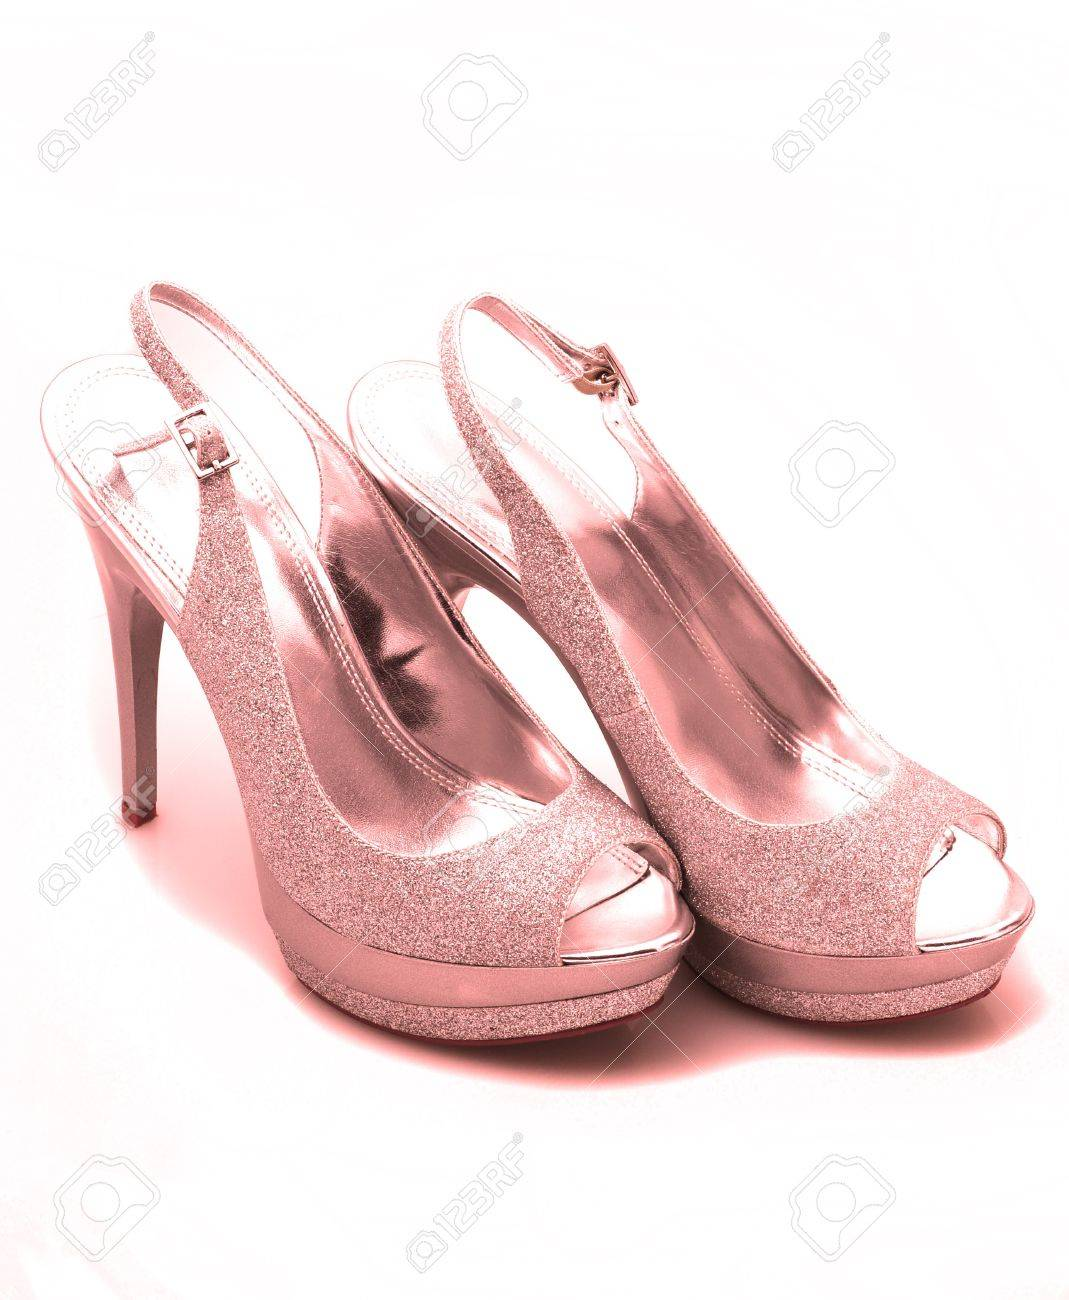 Pink glitter stiletto heels on white background Stock Photo - 14110061 477249d2a